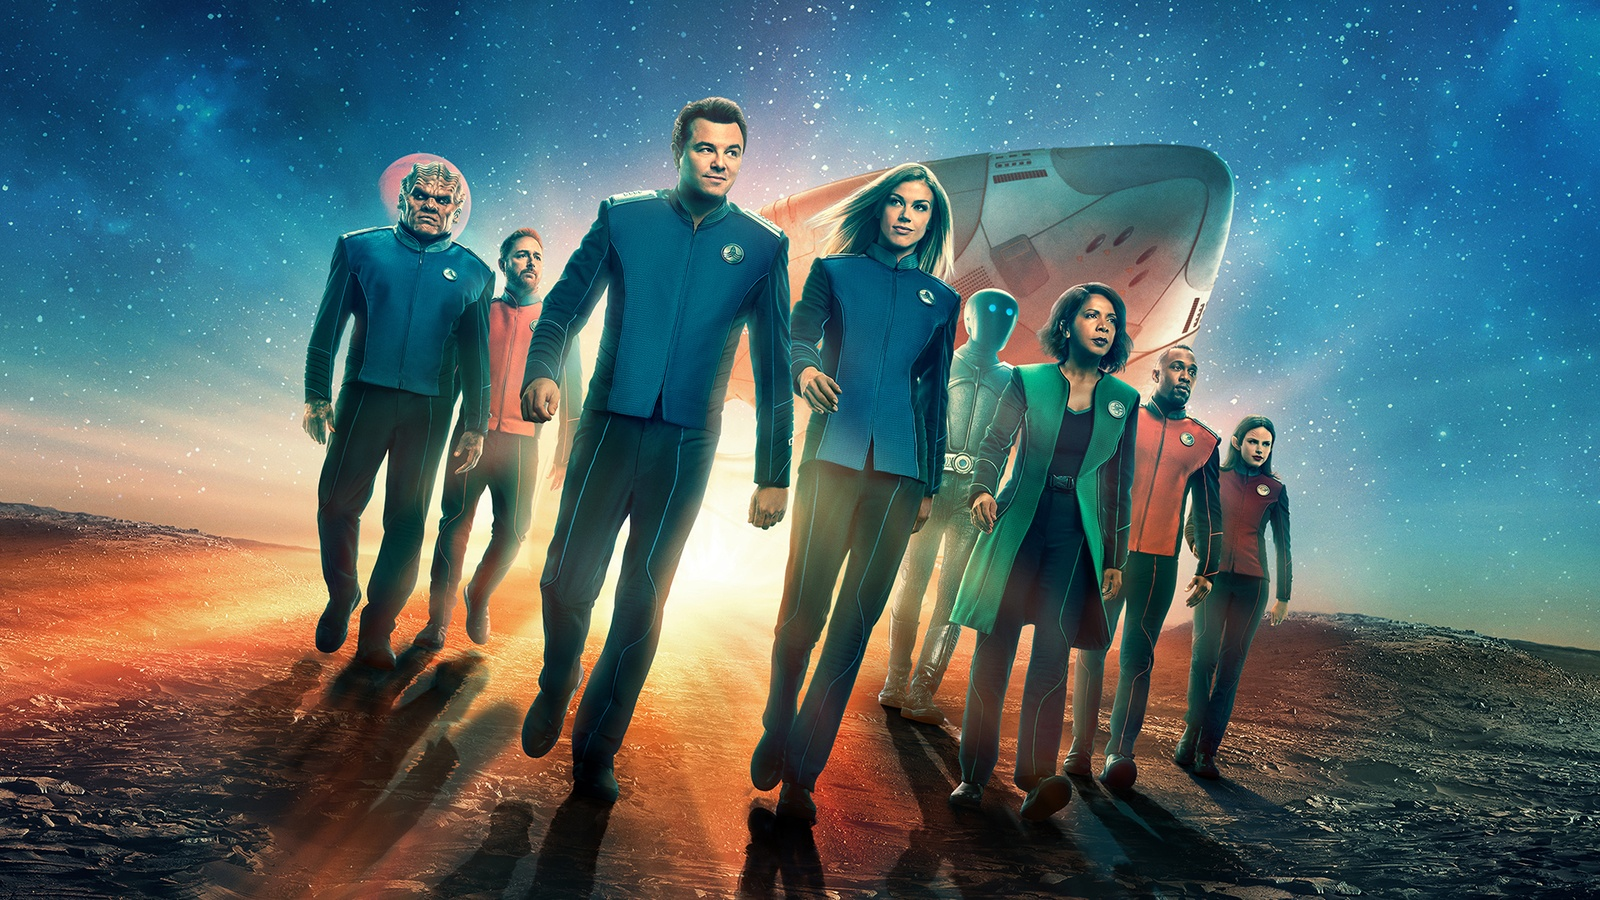 Орвилл / The Orville background